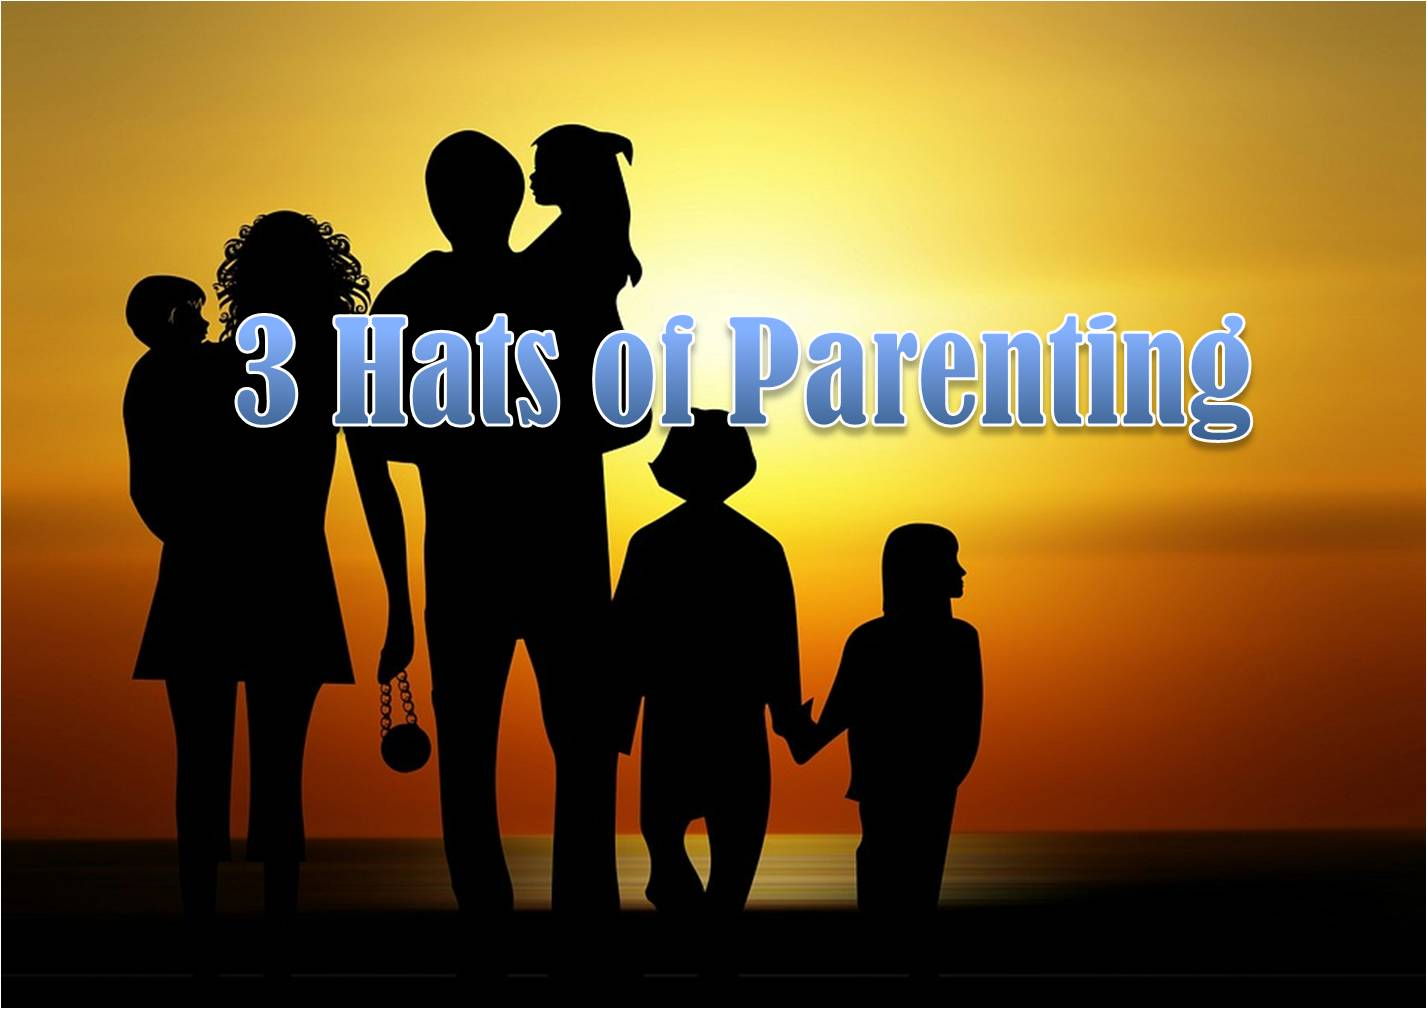 3 Hats of Parenting